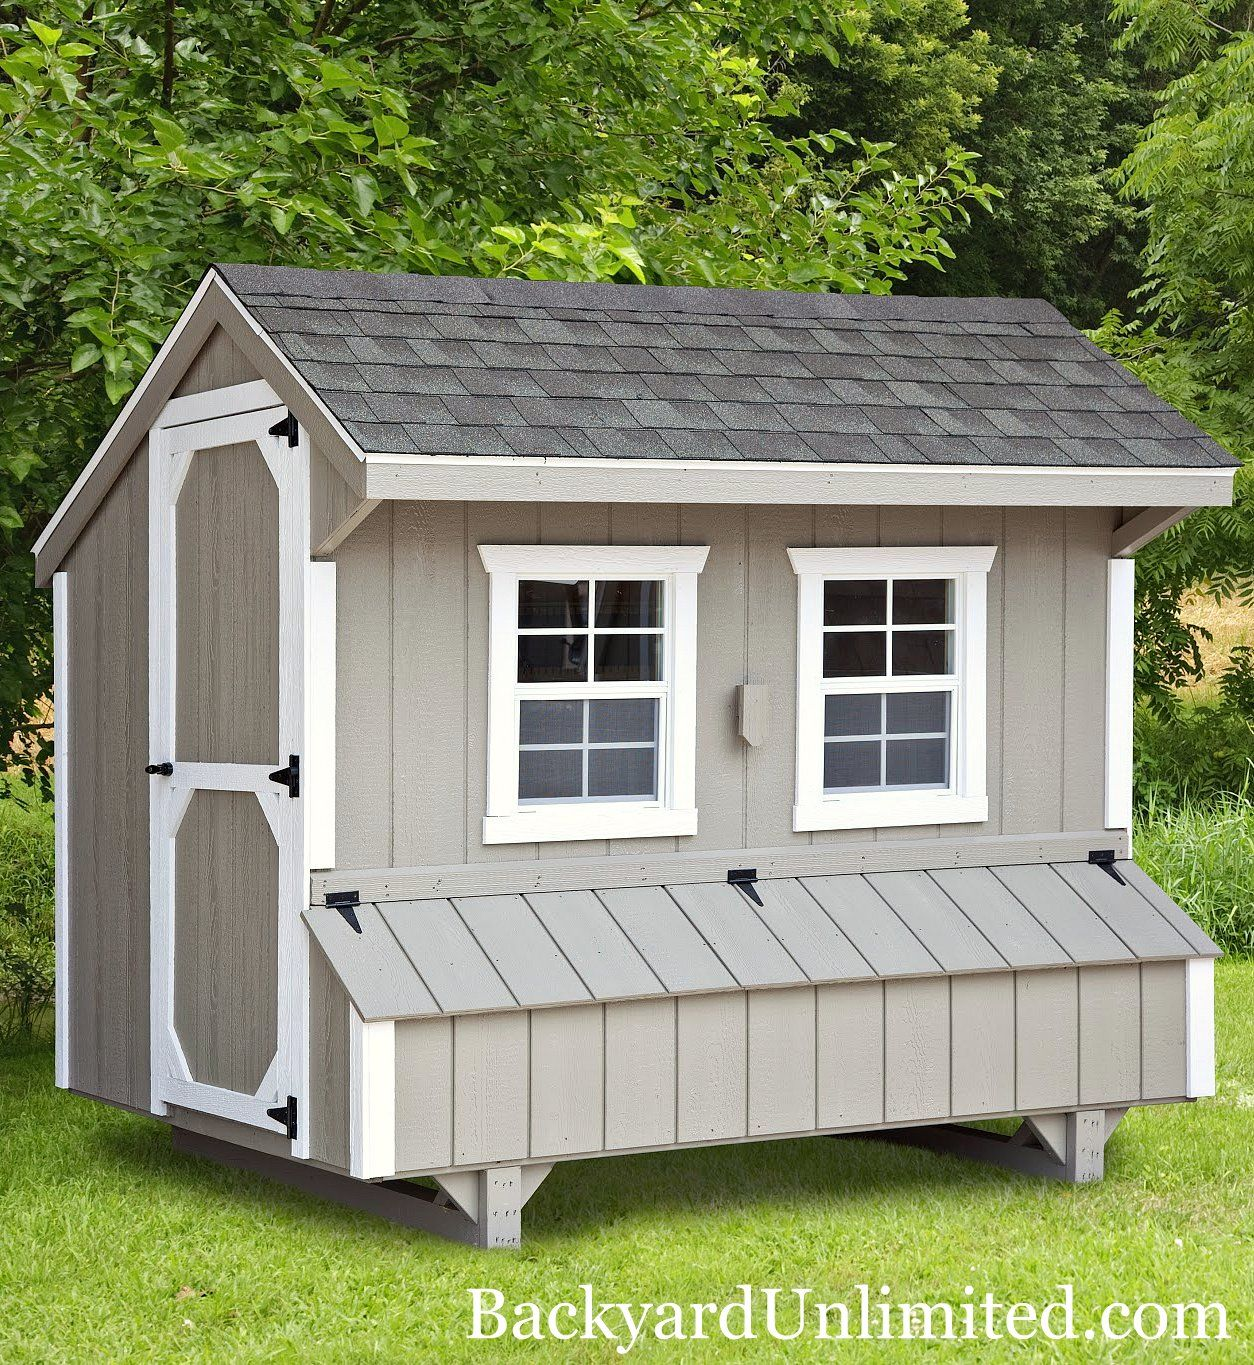 Photo: 5'x8' Quaker Style Chicken Coop: includes 8 nesting boxes and holds 20-24 chickens